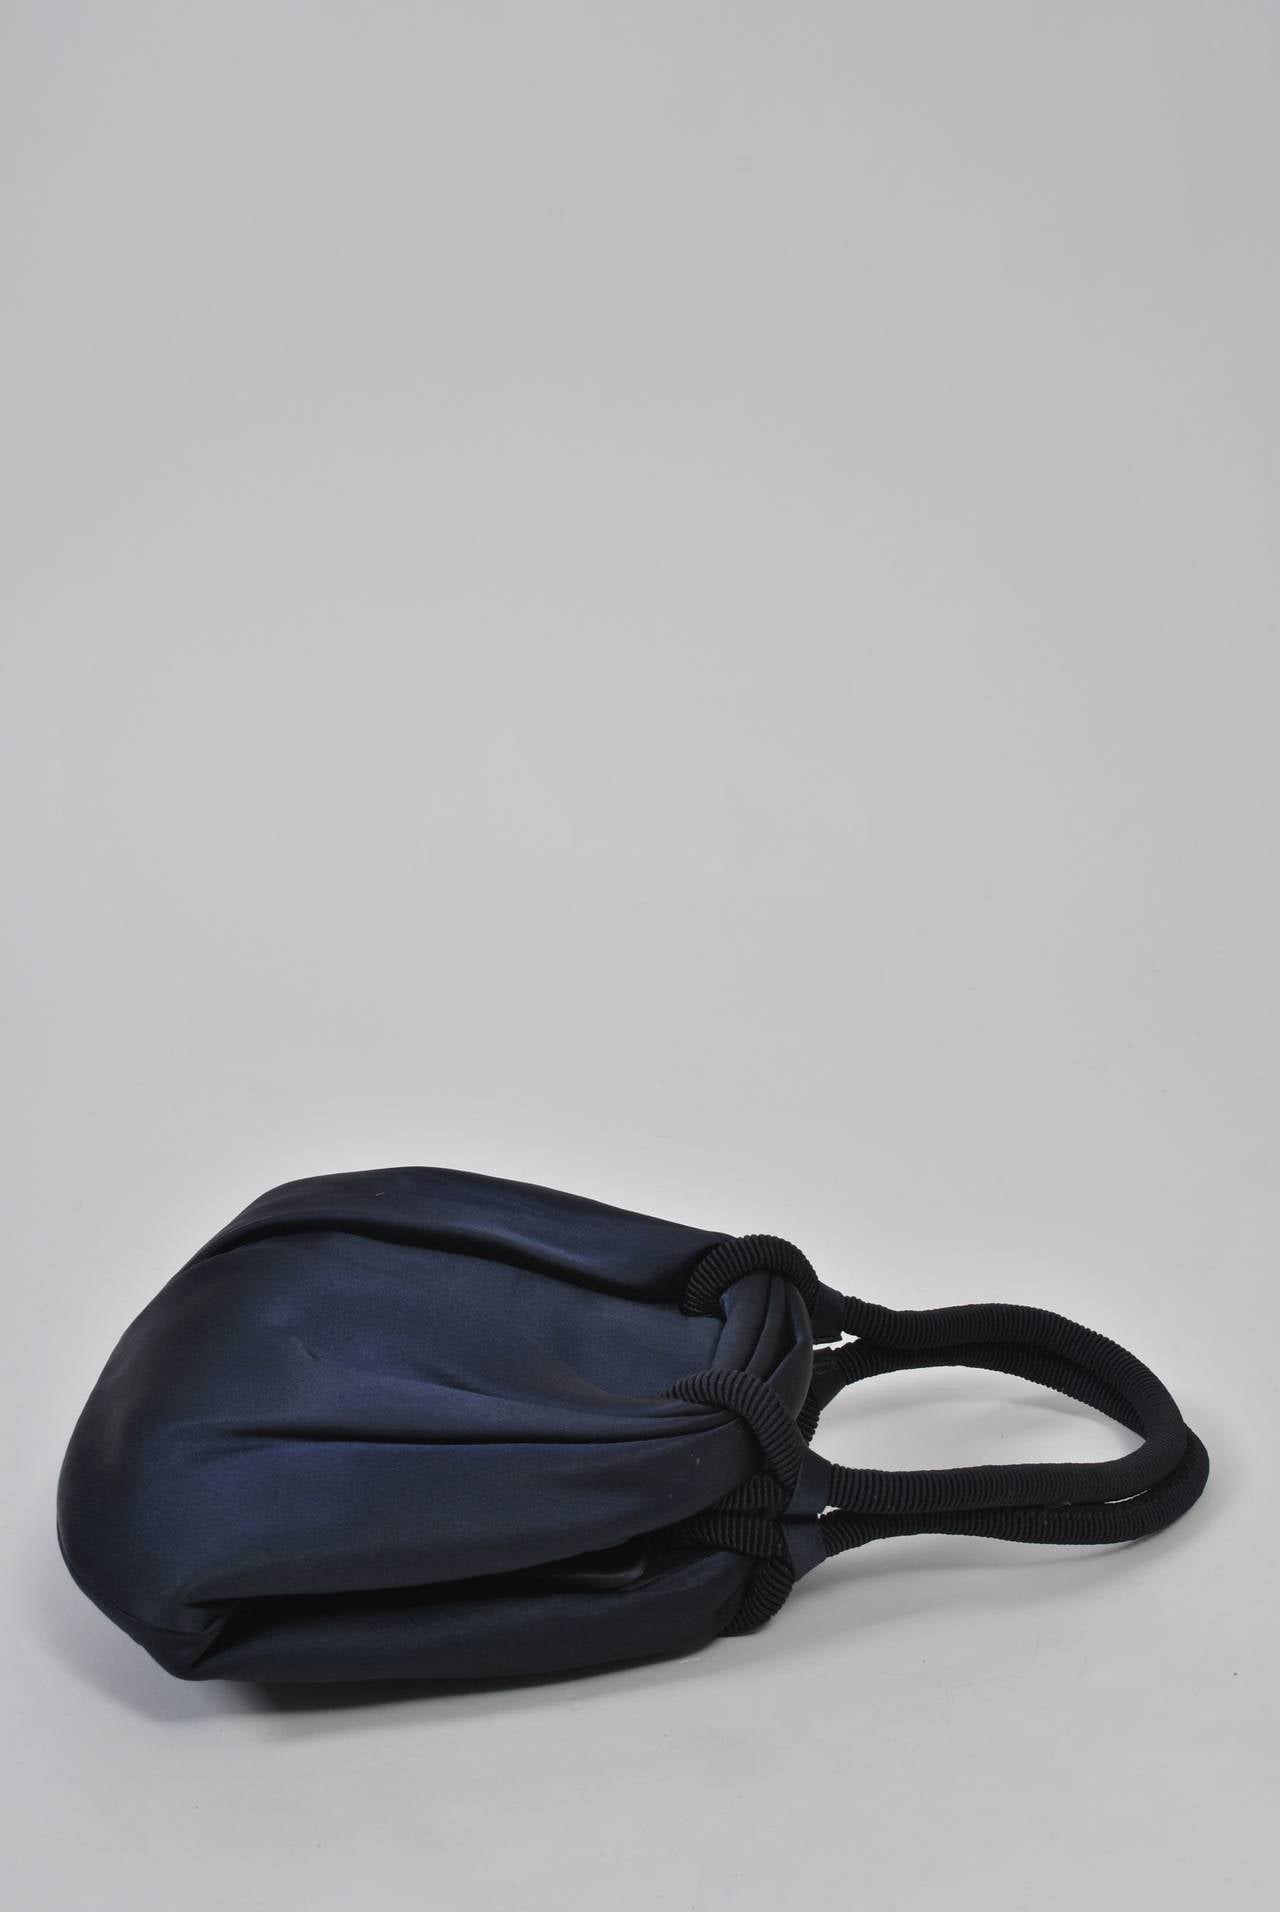 Navy Satin Purse with Tortoise Kiss Clasp, Paris 7